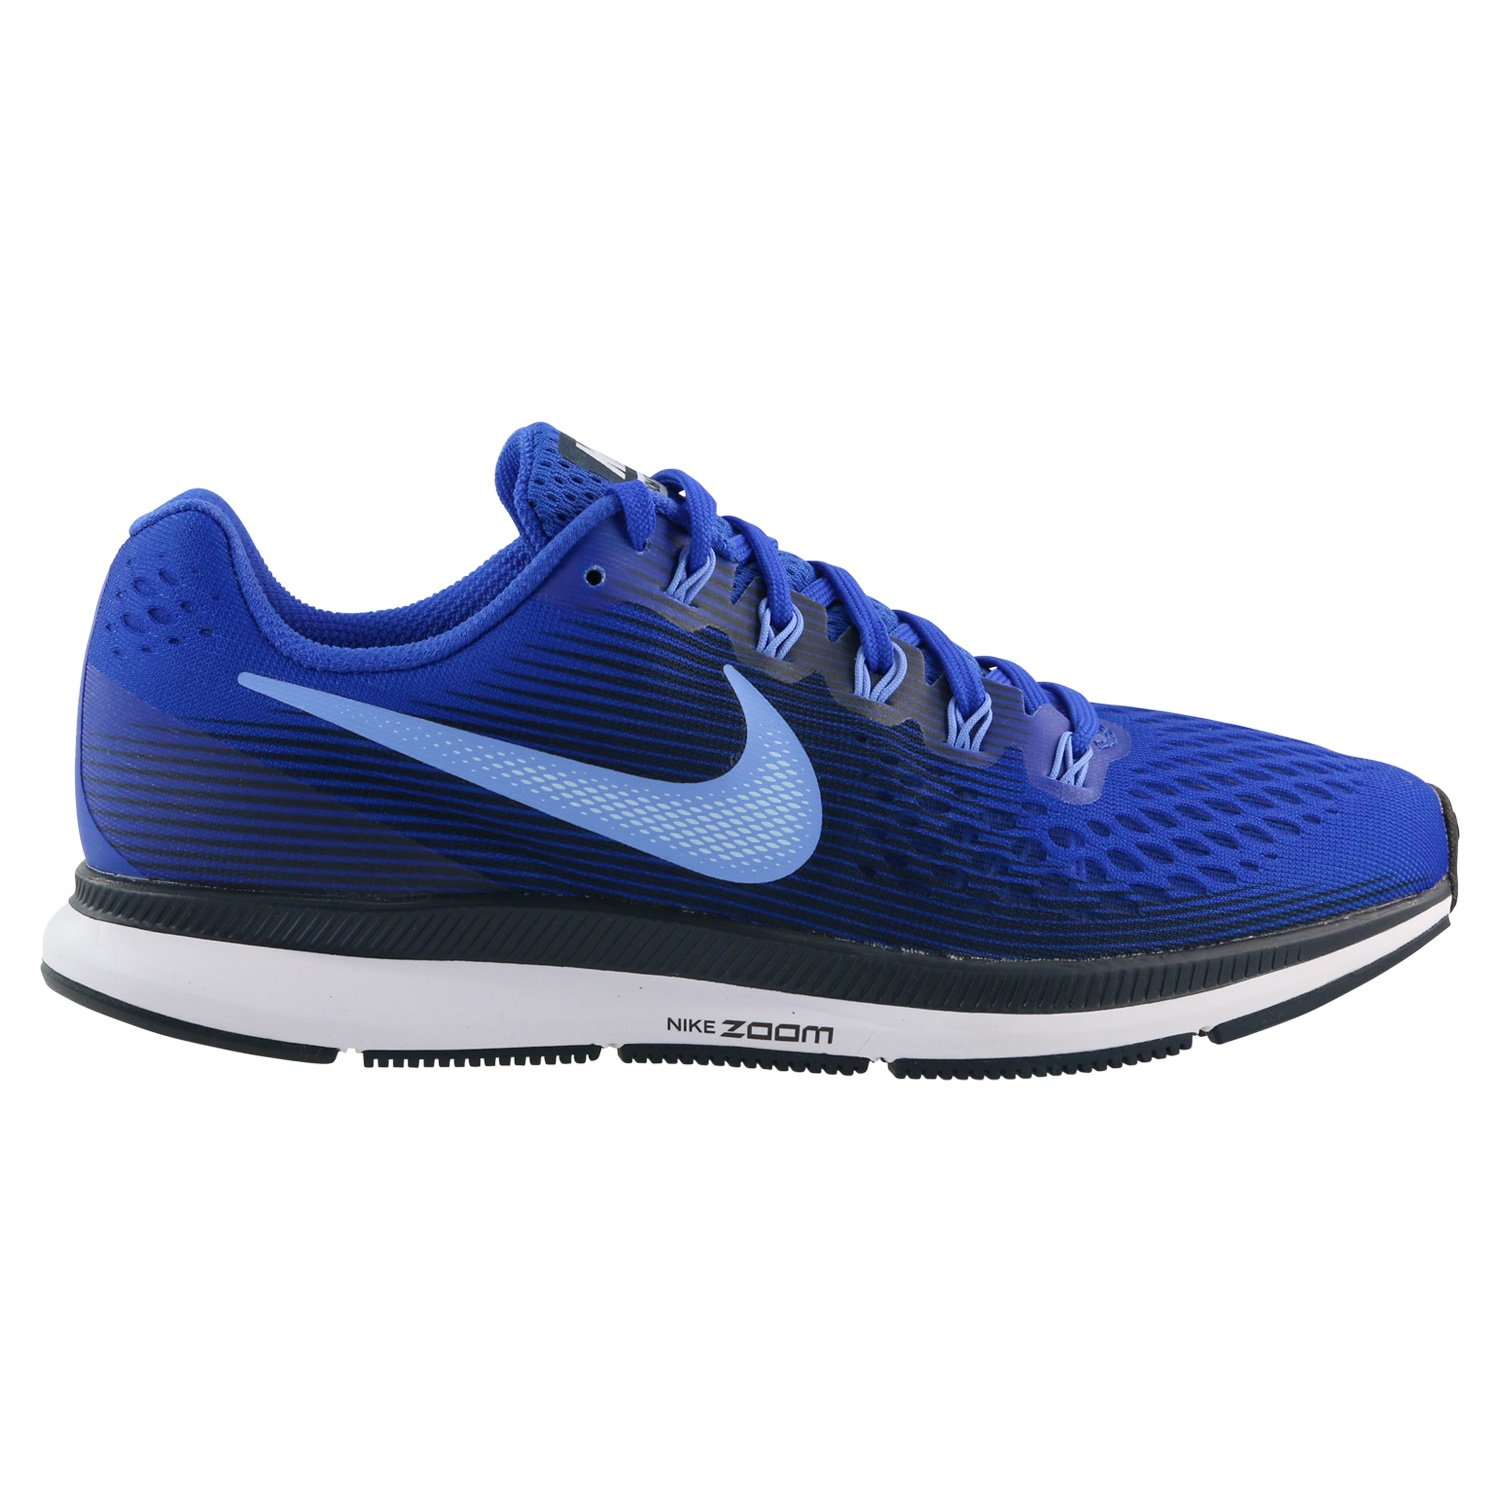 796a556a26990 NIKE Men's Air Zoom Pegasus 34, Hyper Royal/Royal Pulse, 6 M US